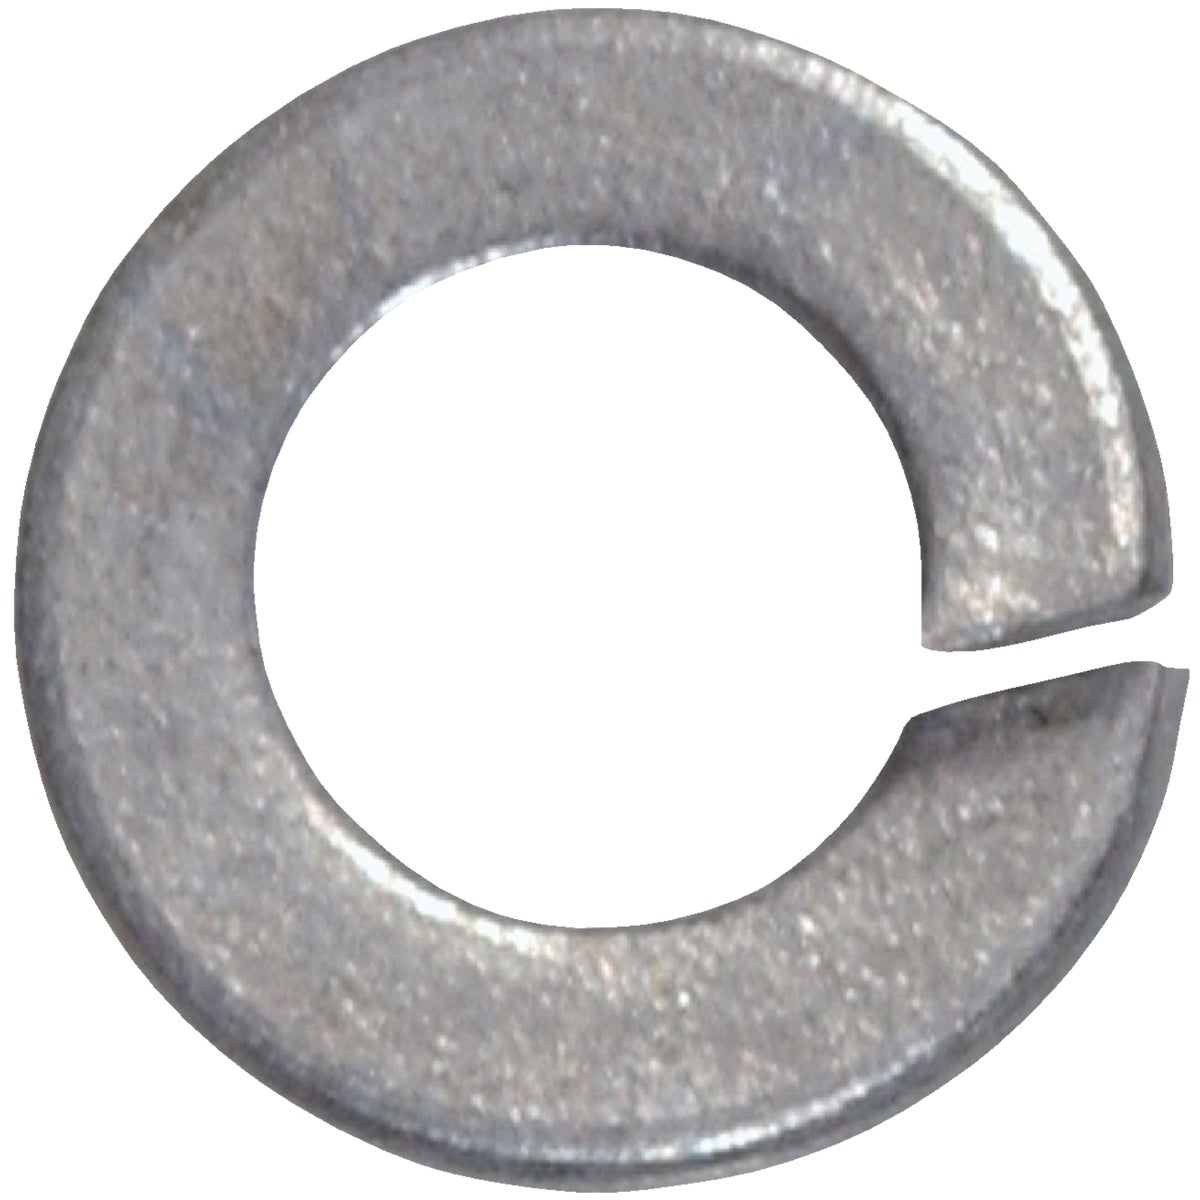 "1/2"" SPLIT LOCK WASHER - 811059 by Hillman Fastener"